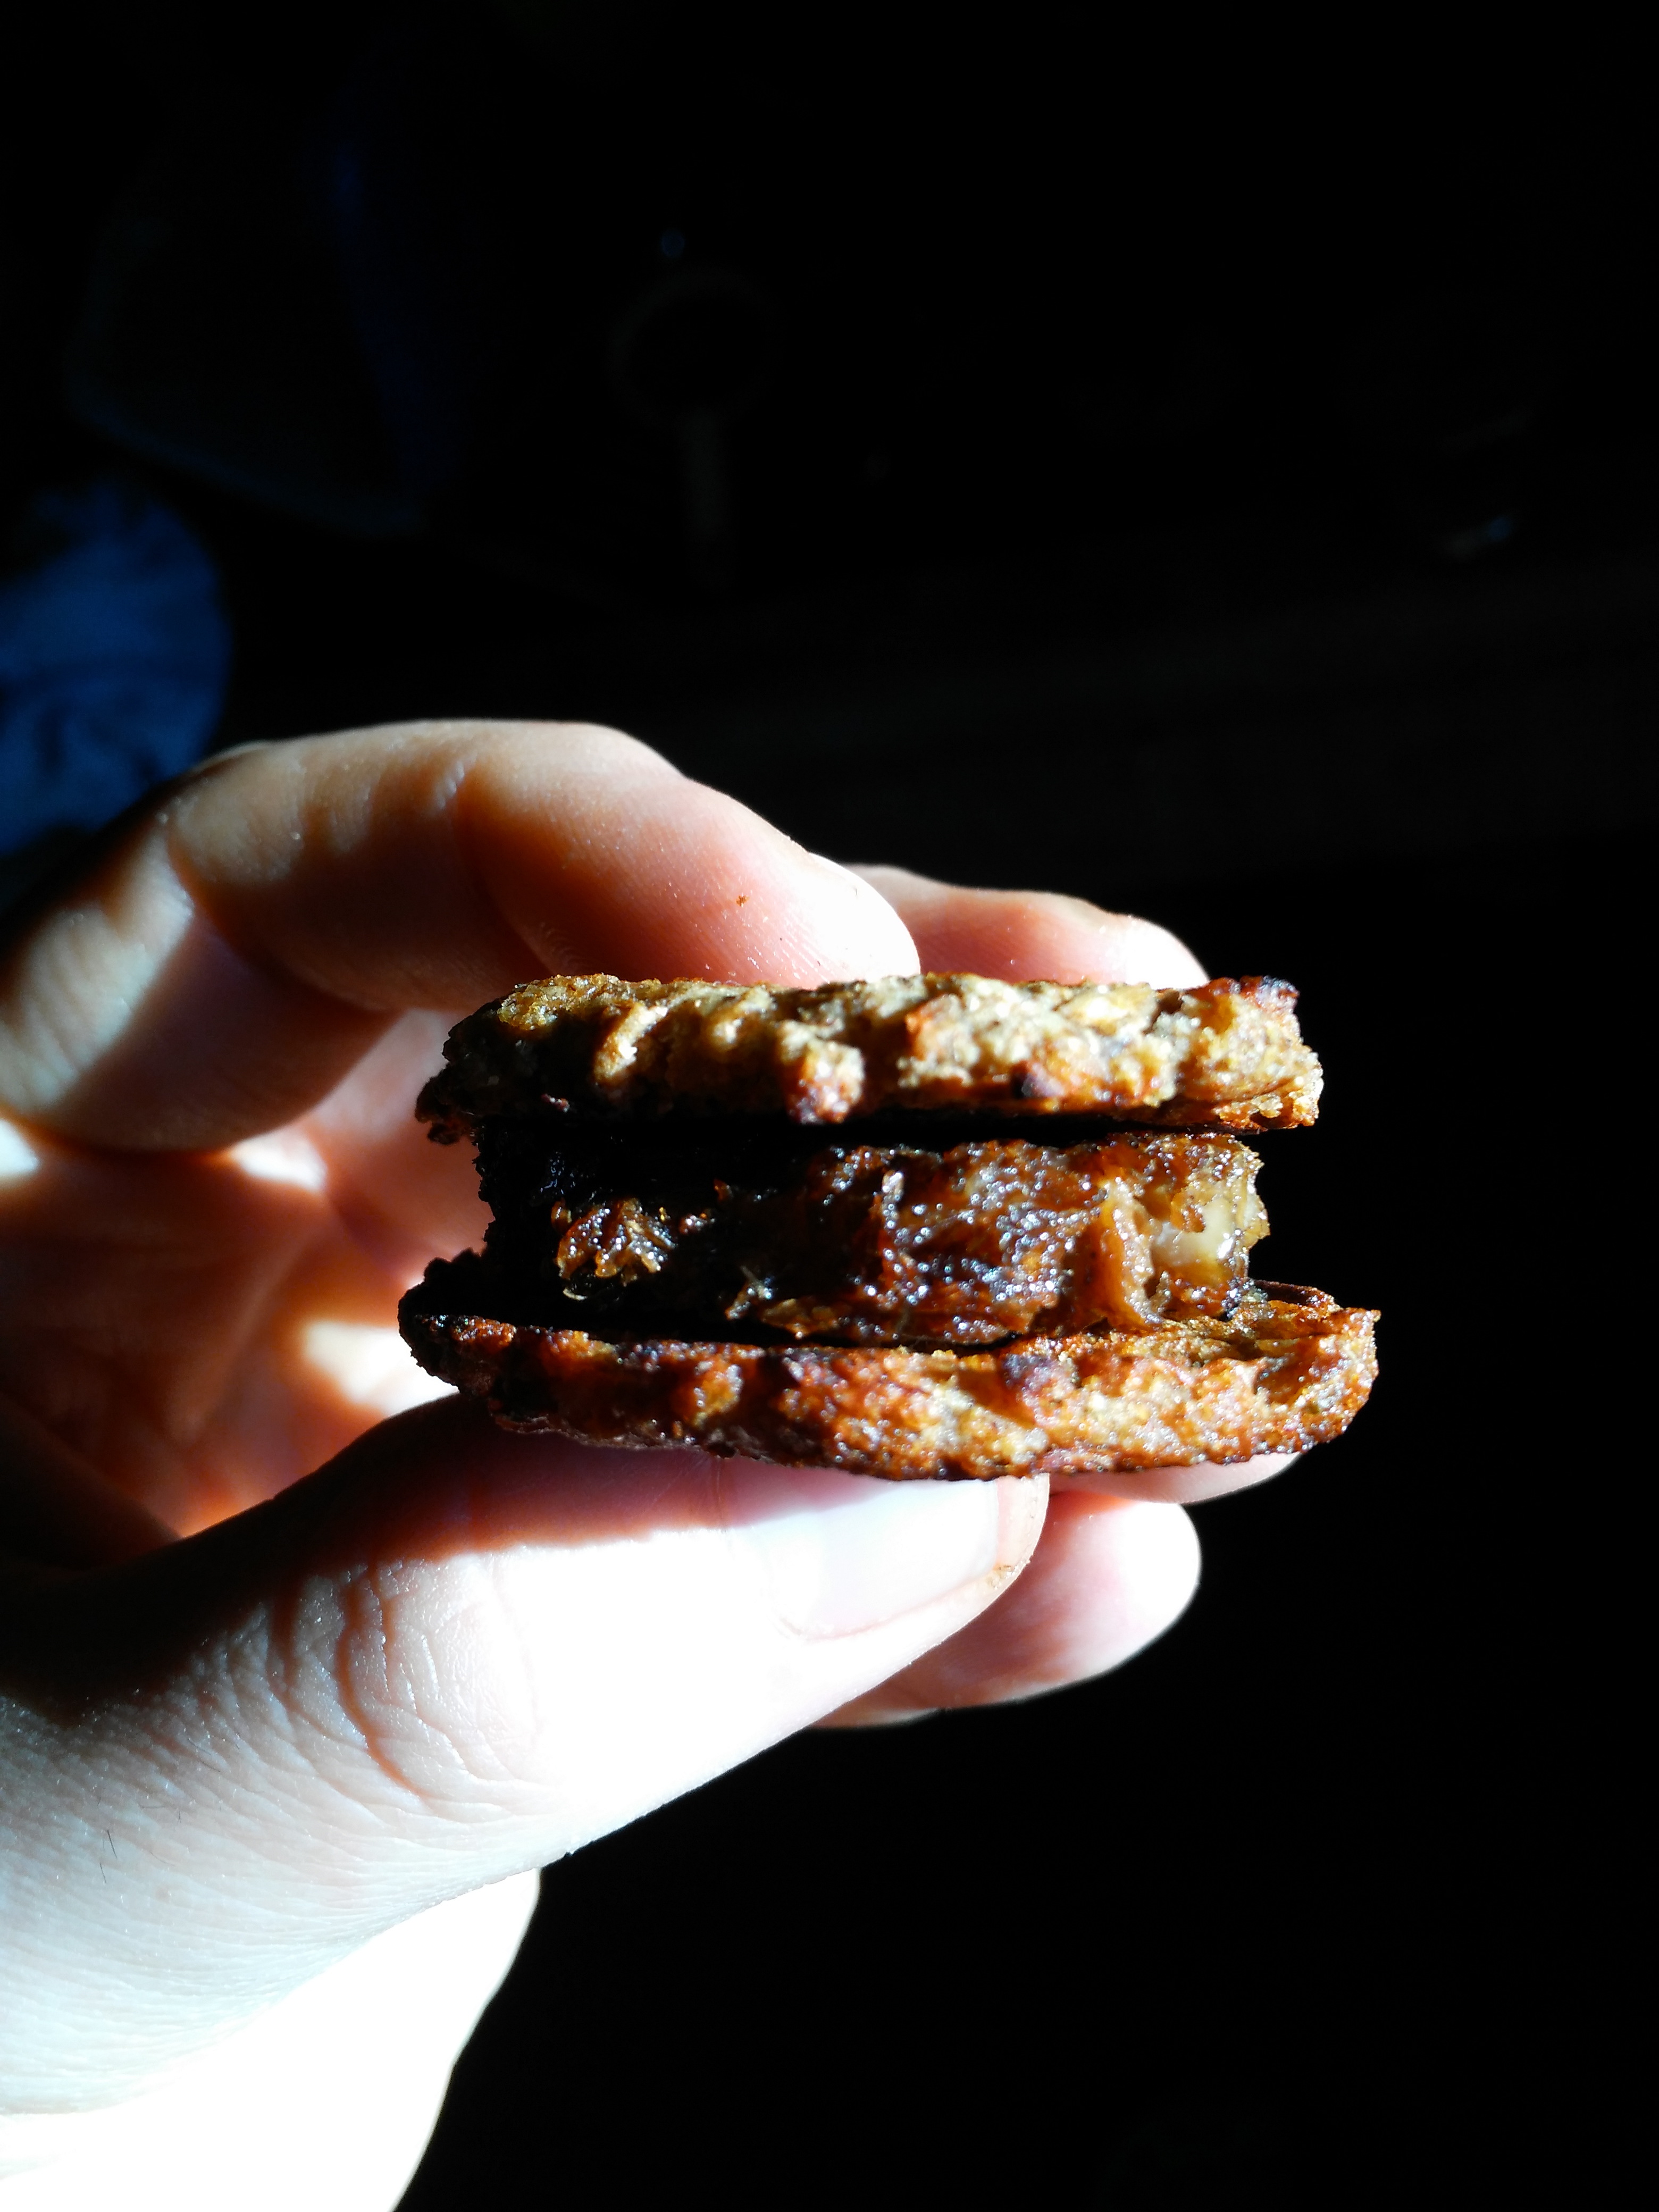 Edible Innovations: Growing Mushrooms from Coffee Grounds and Making them into Burgers